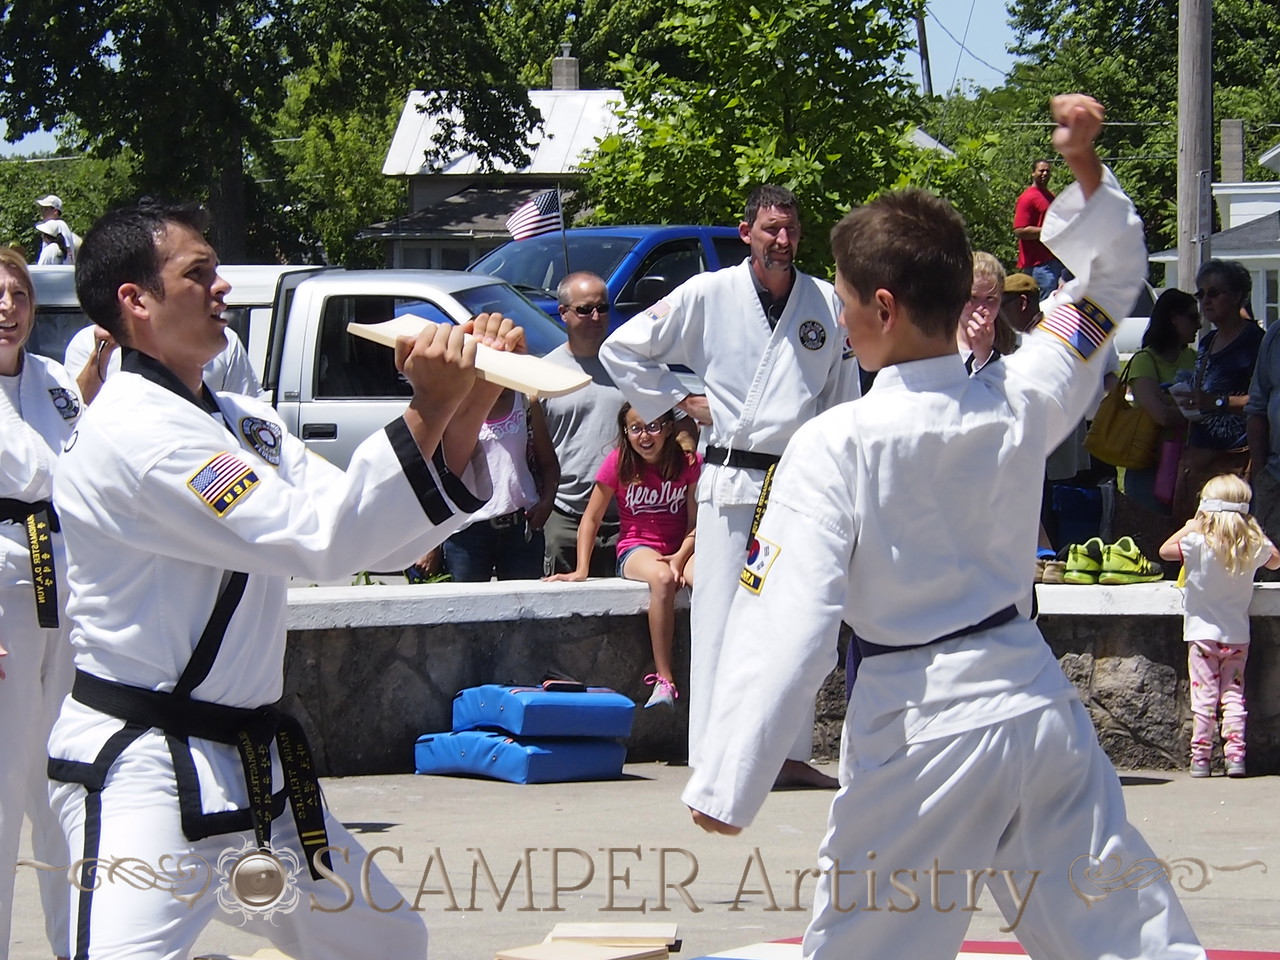 Cherry Fest parade and demonstration, June 14, 2014